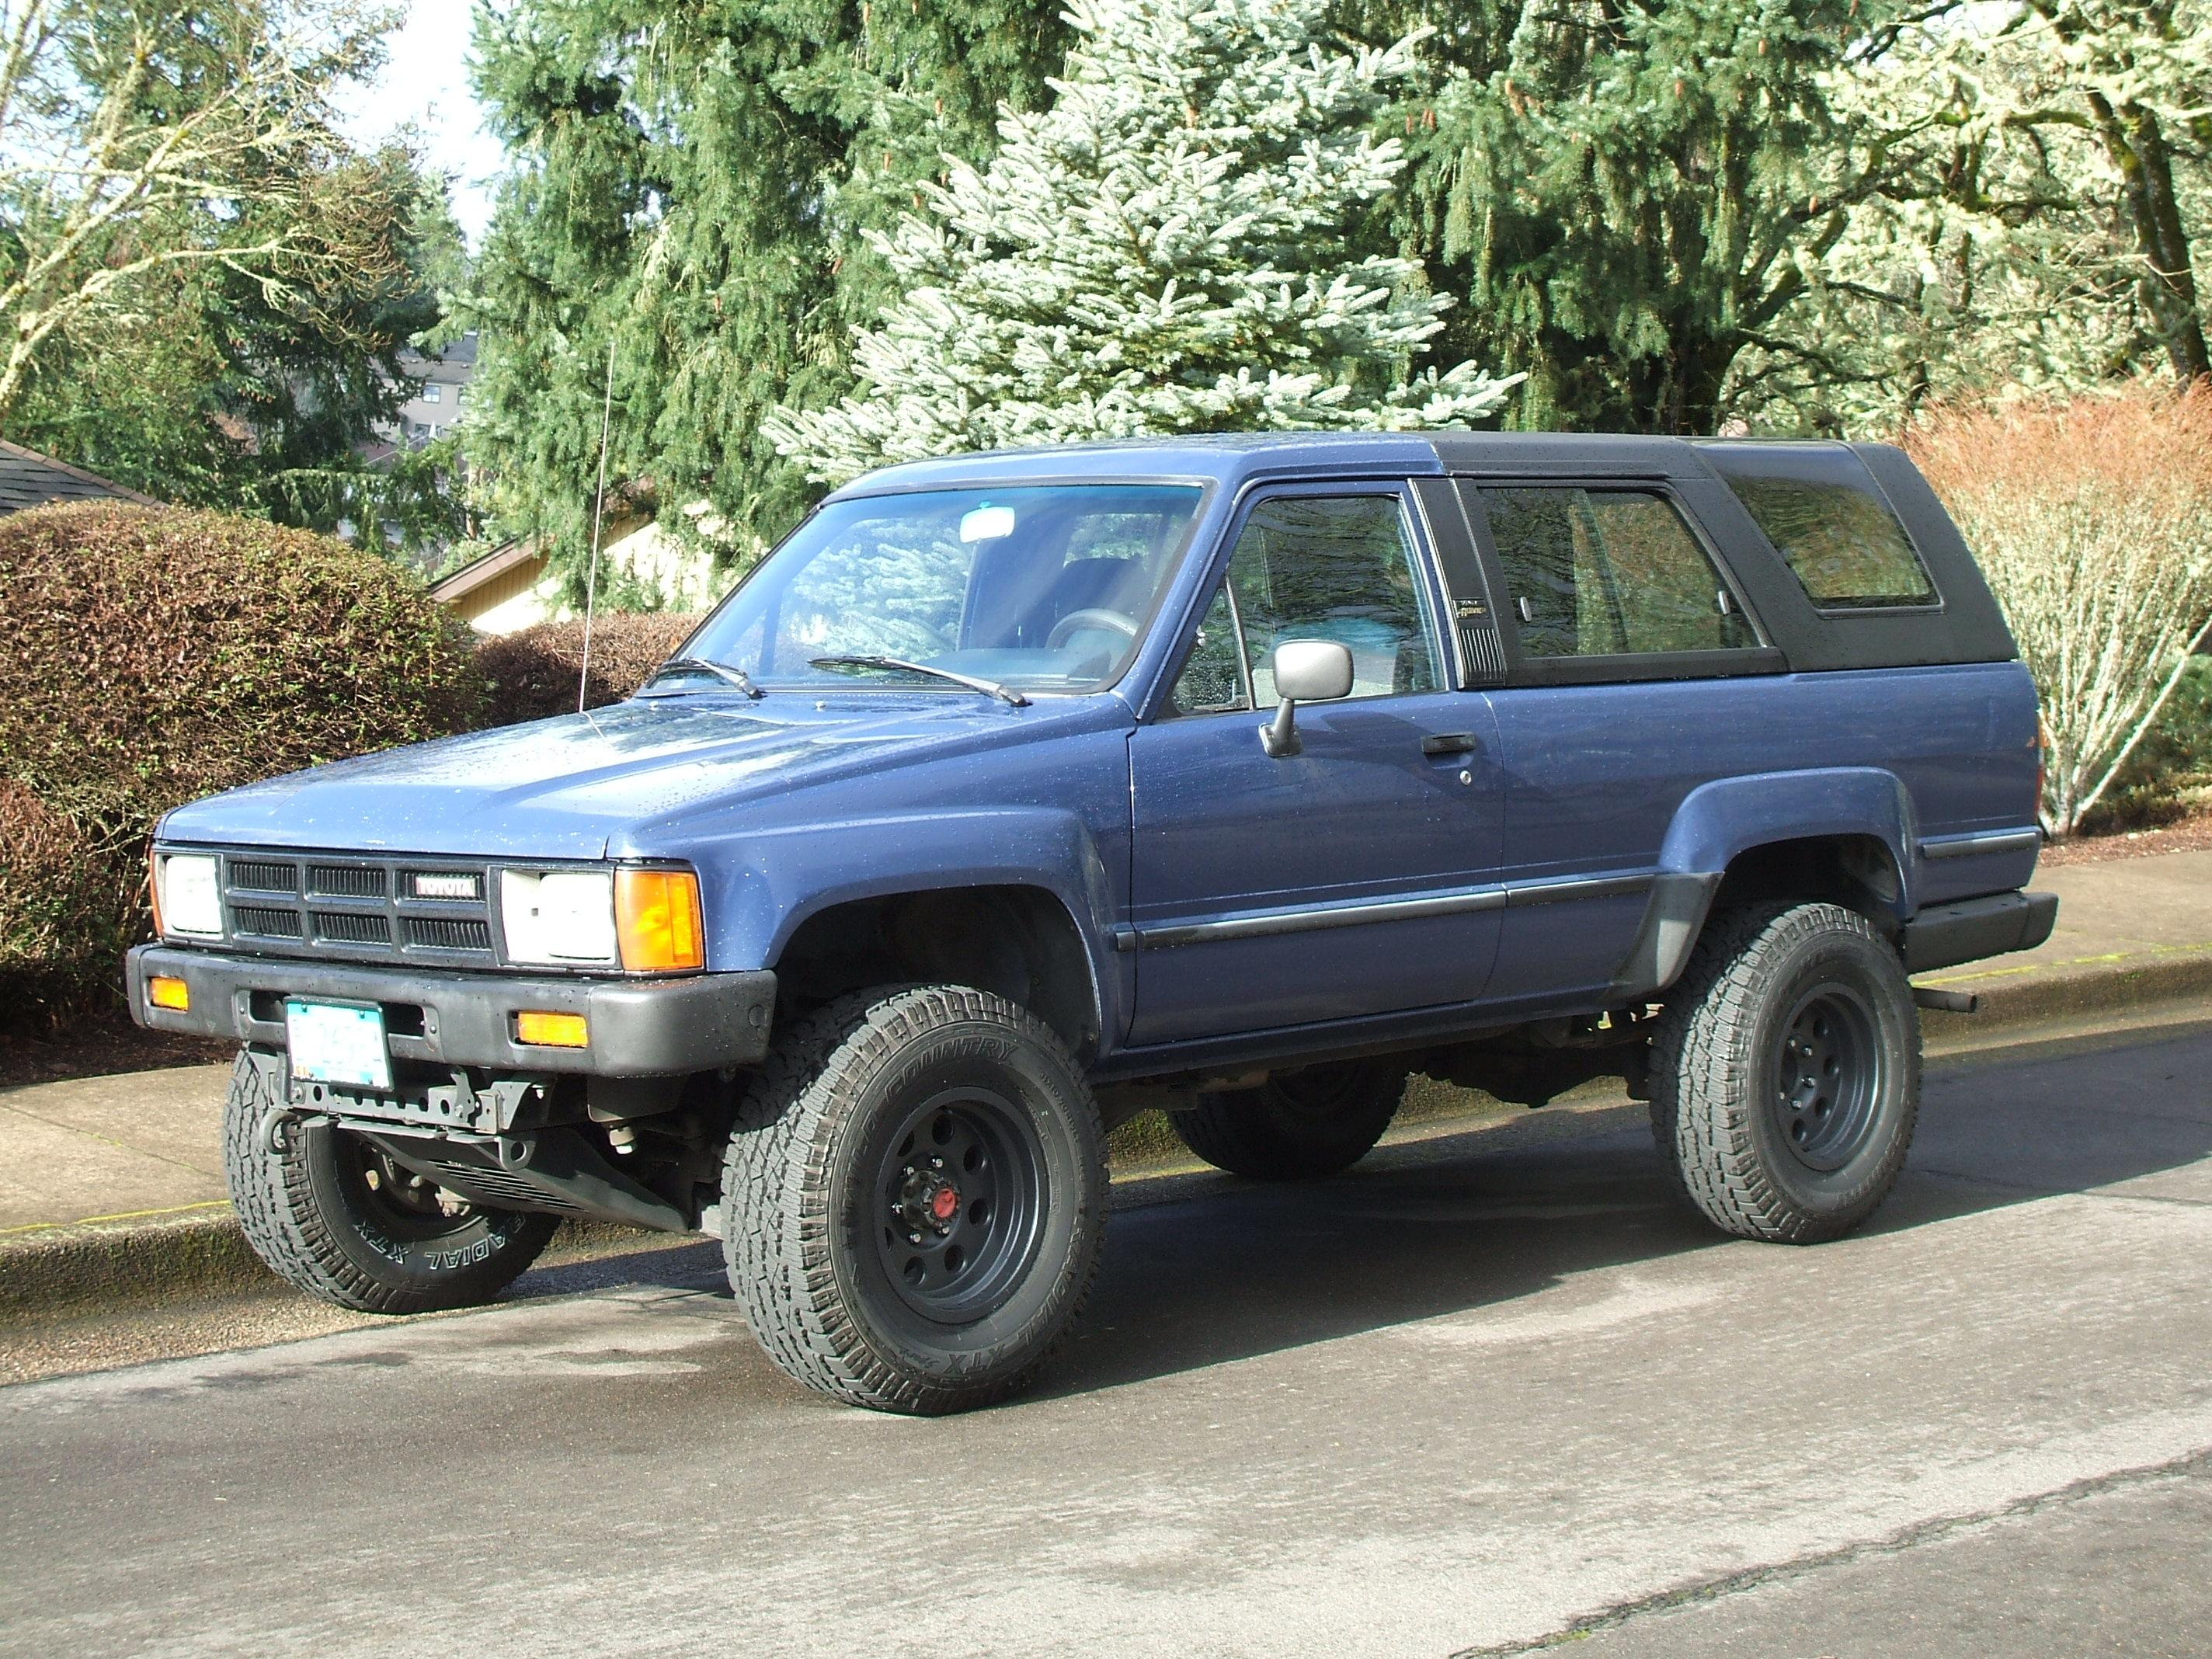 Or19864runner S 1986 Toyota 4runner In Corvallis Or